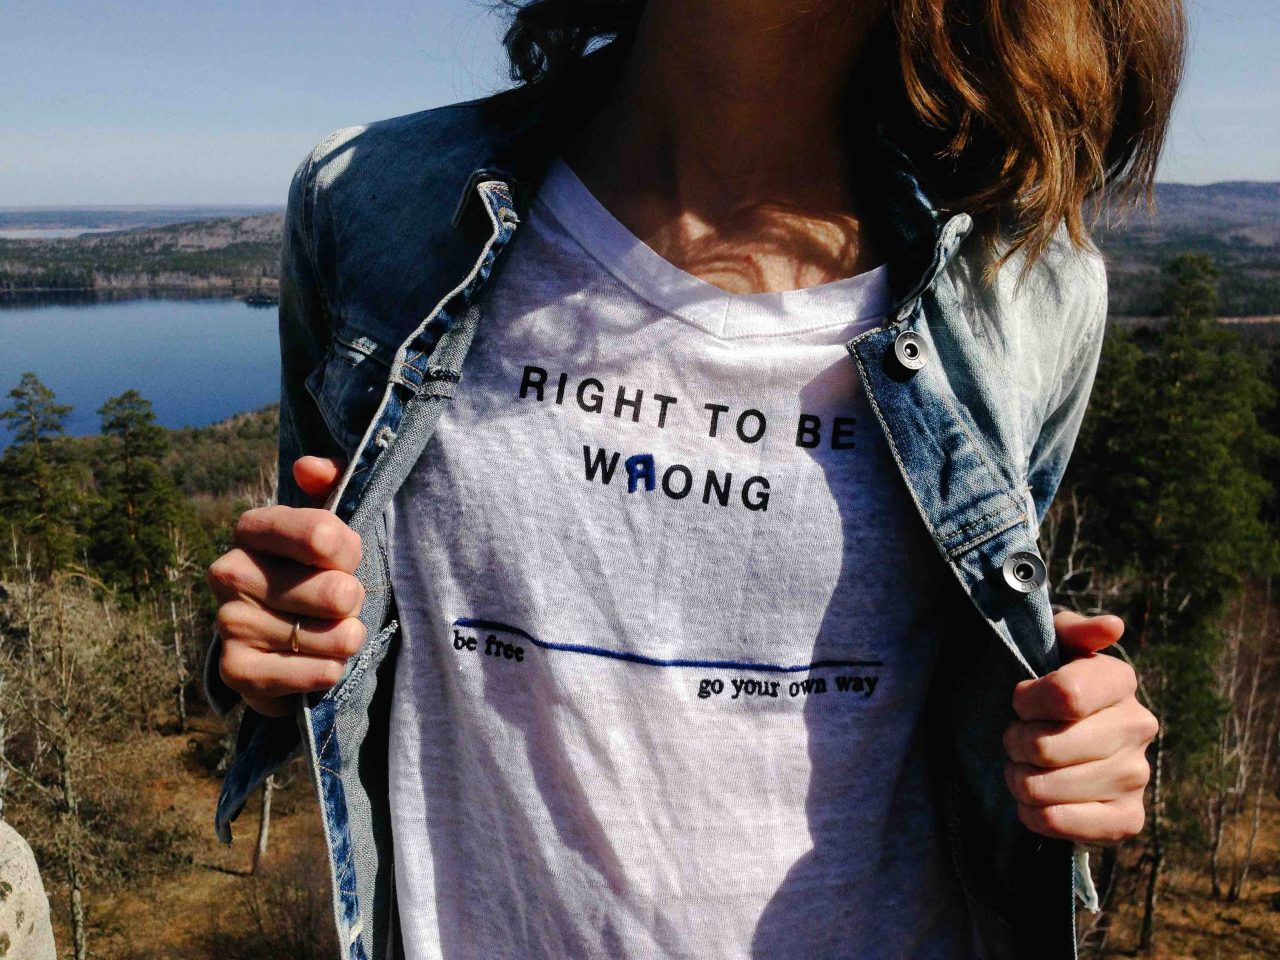 Right-to-be-Wrong-Woman-1280x960.jpg